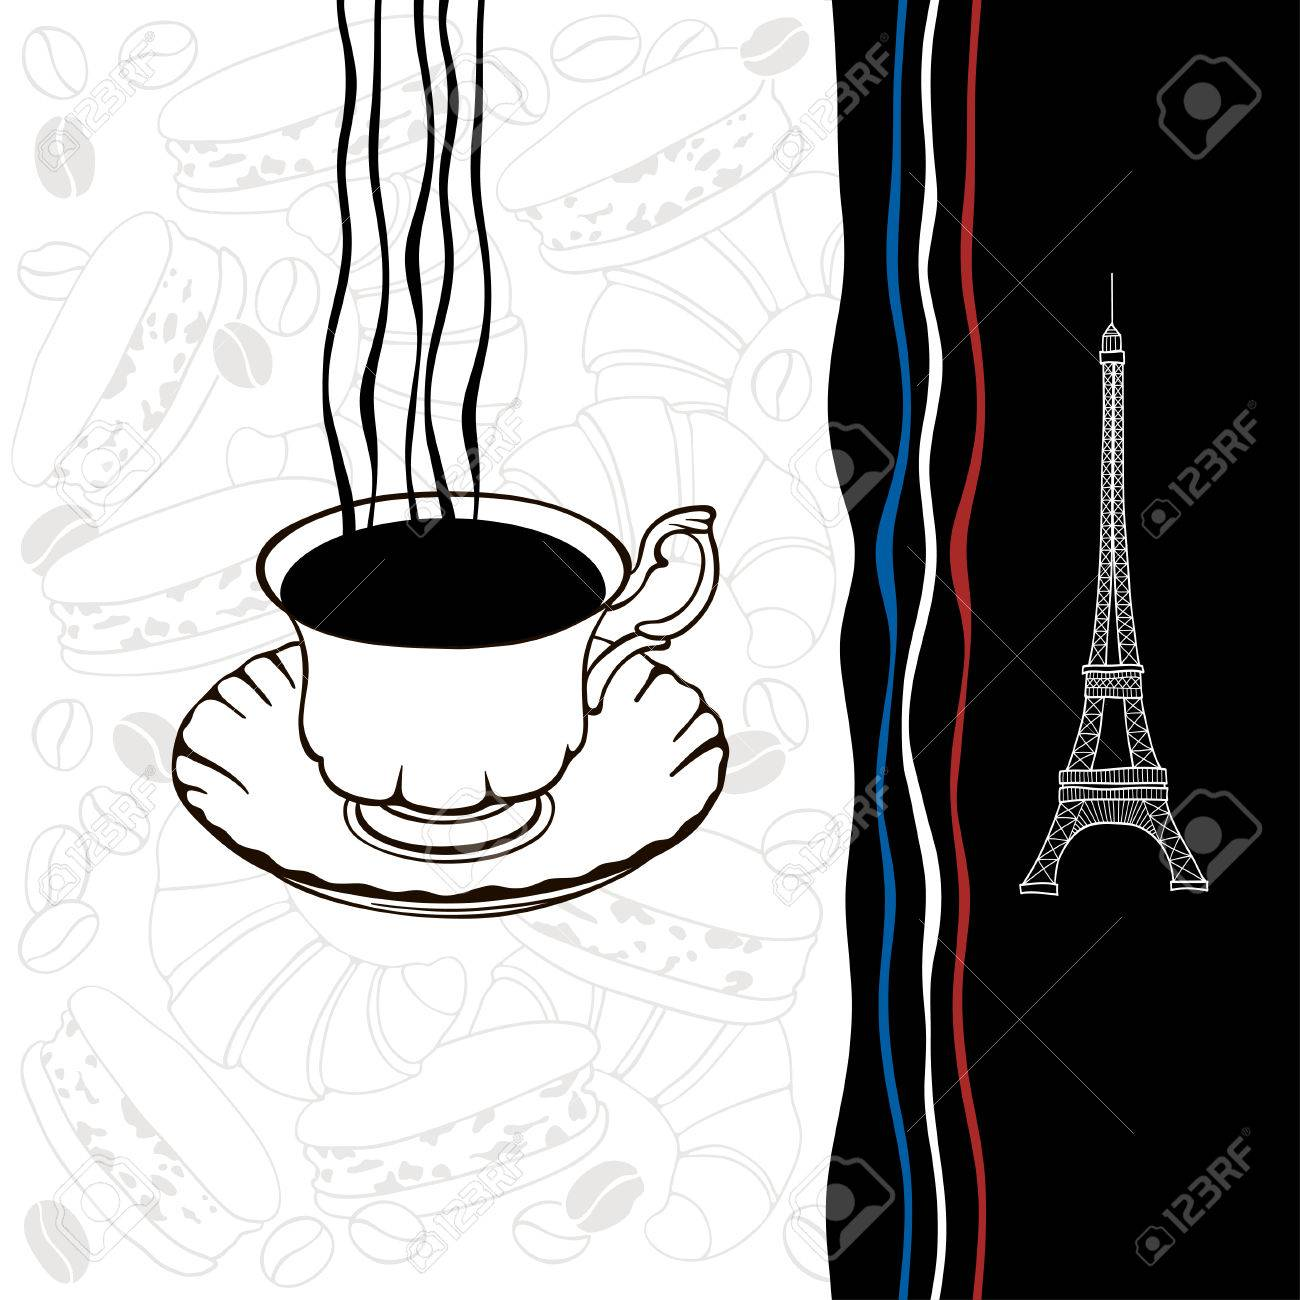 Decorative background with symbols of france traditional french decorative background with symbols of france traditional french breakfast the eiffel tower and flag stock biocorpaavc